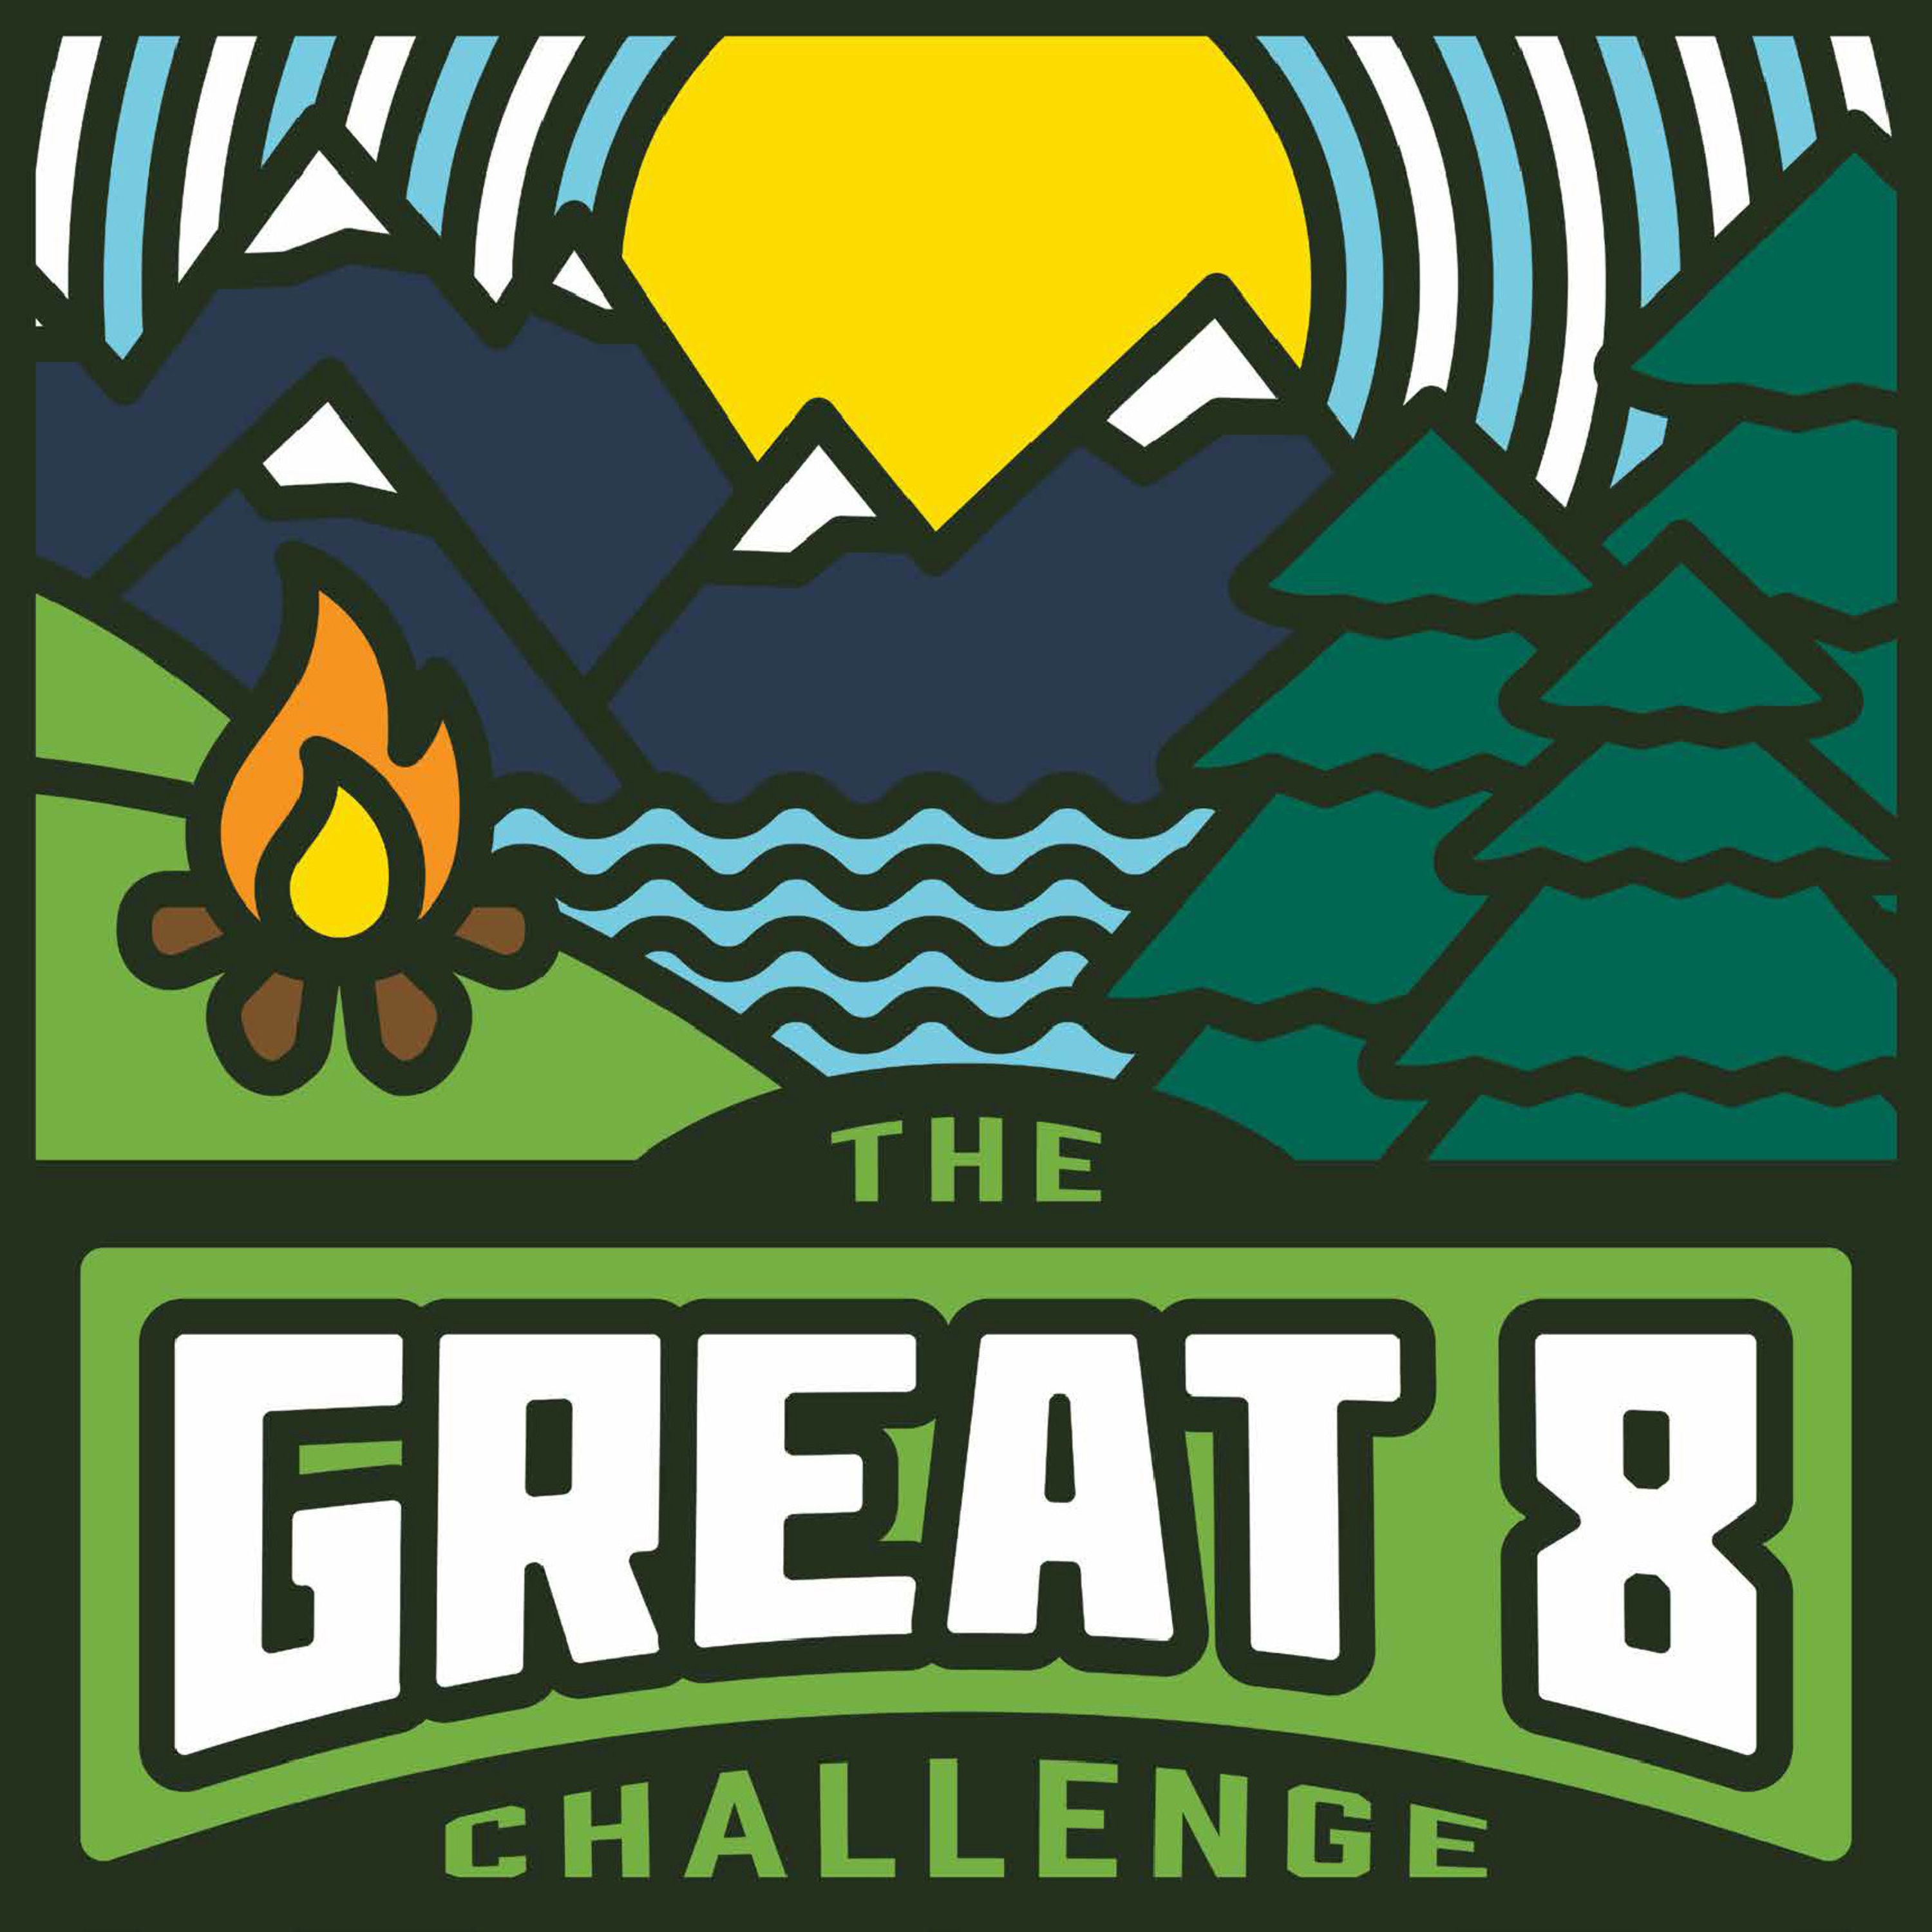 The Great 8 Challenge